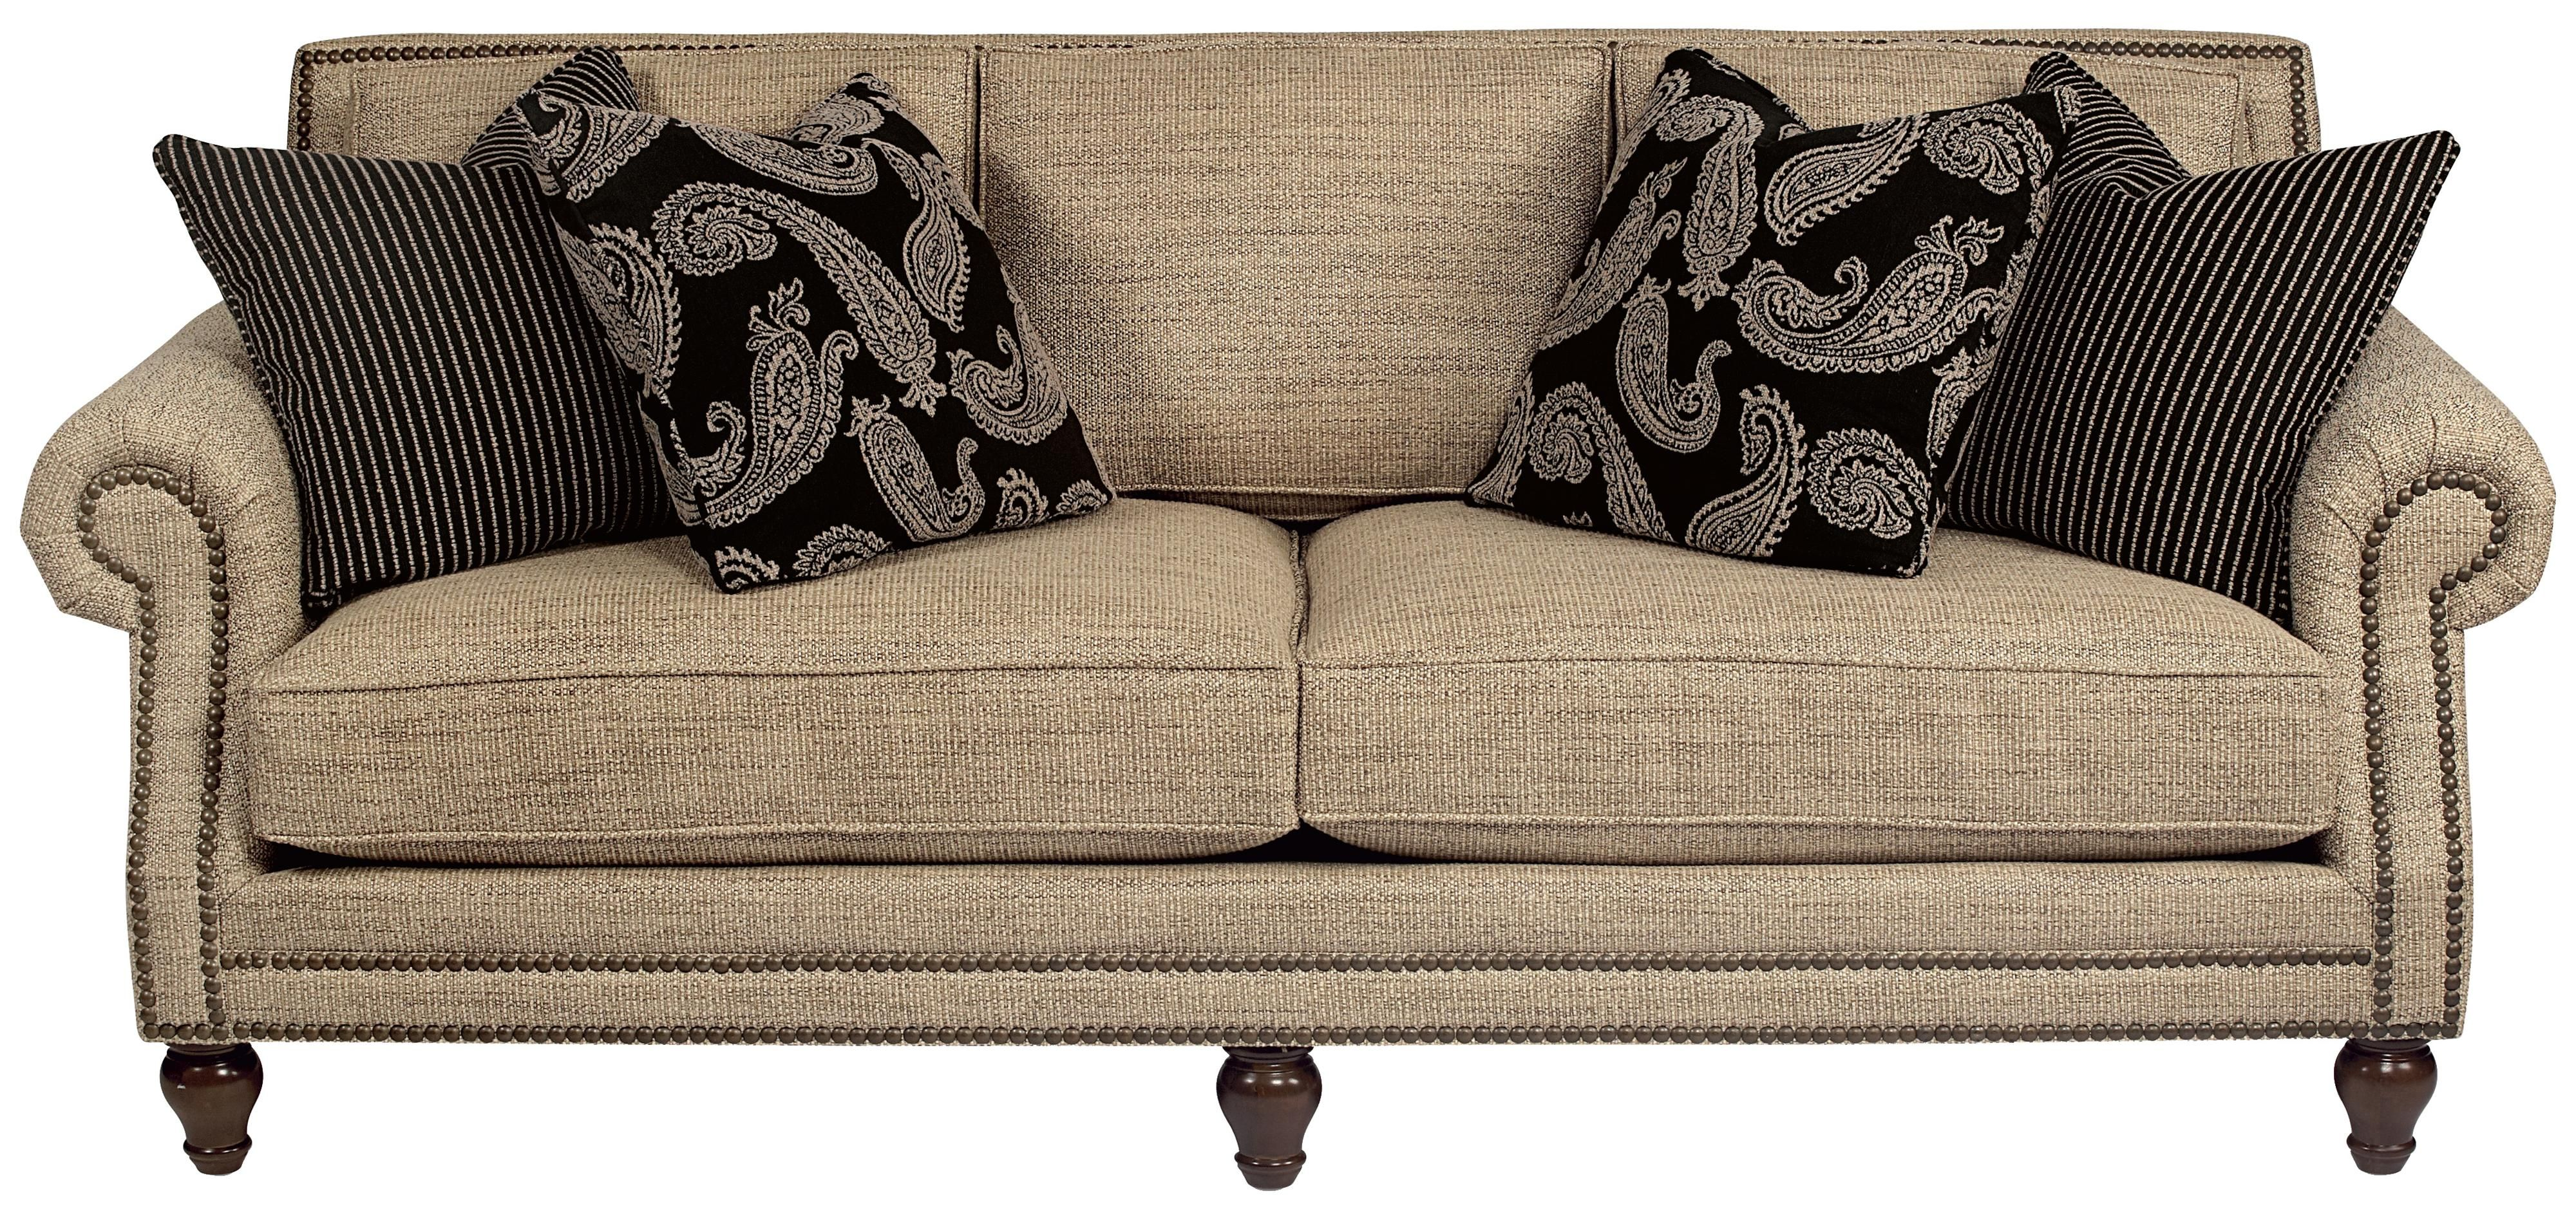 926 Traditional High End Sofa with Nail Head Trim by Alan White ...